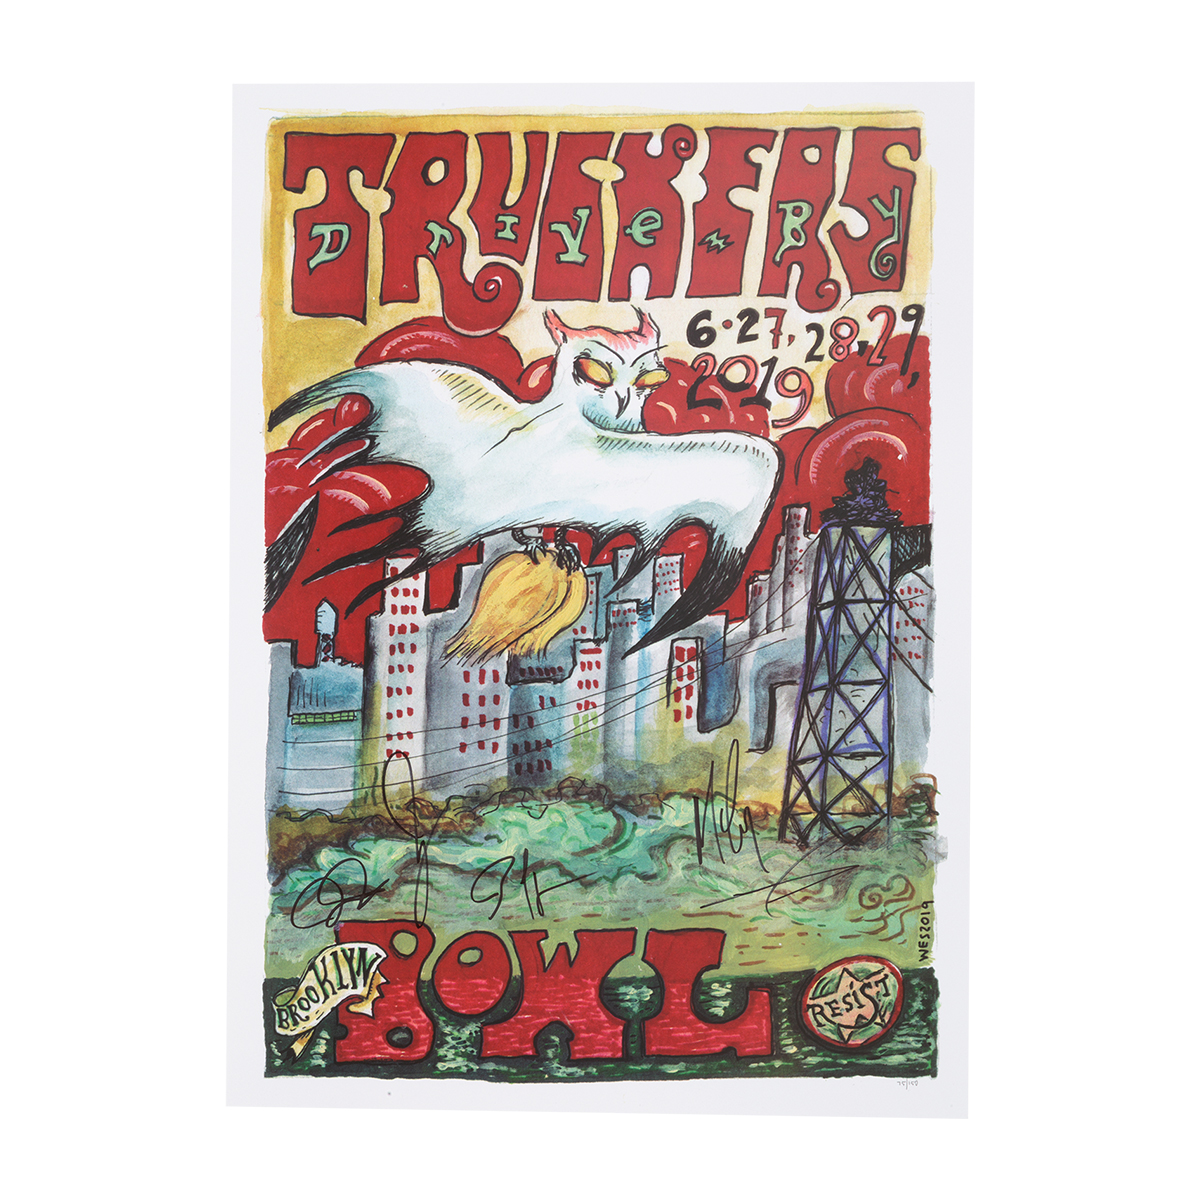 Brooklyn Bowl June 27-29 2019 Signed Poster